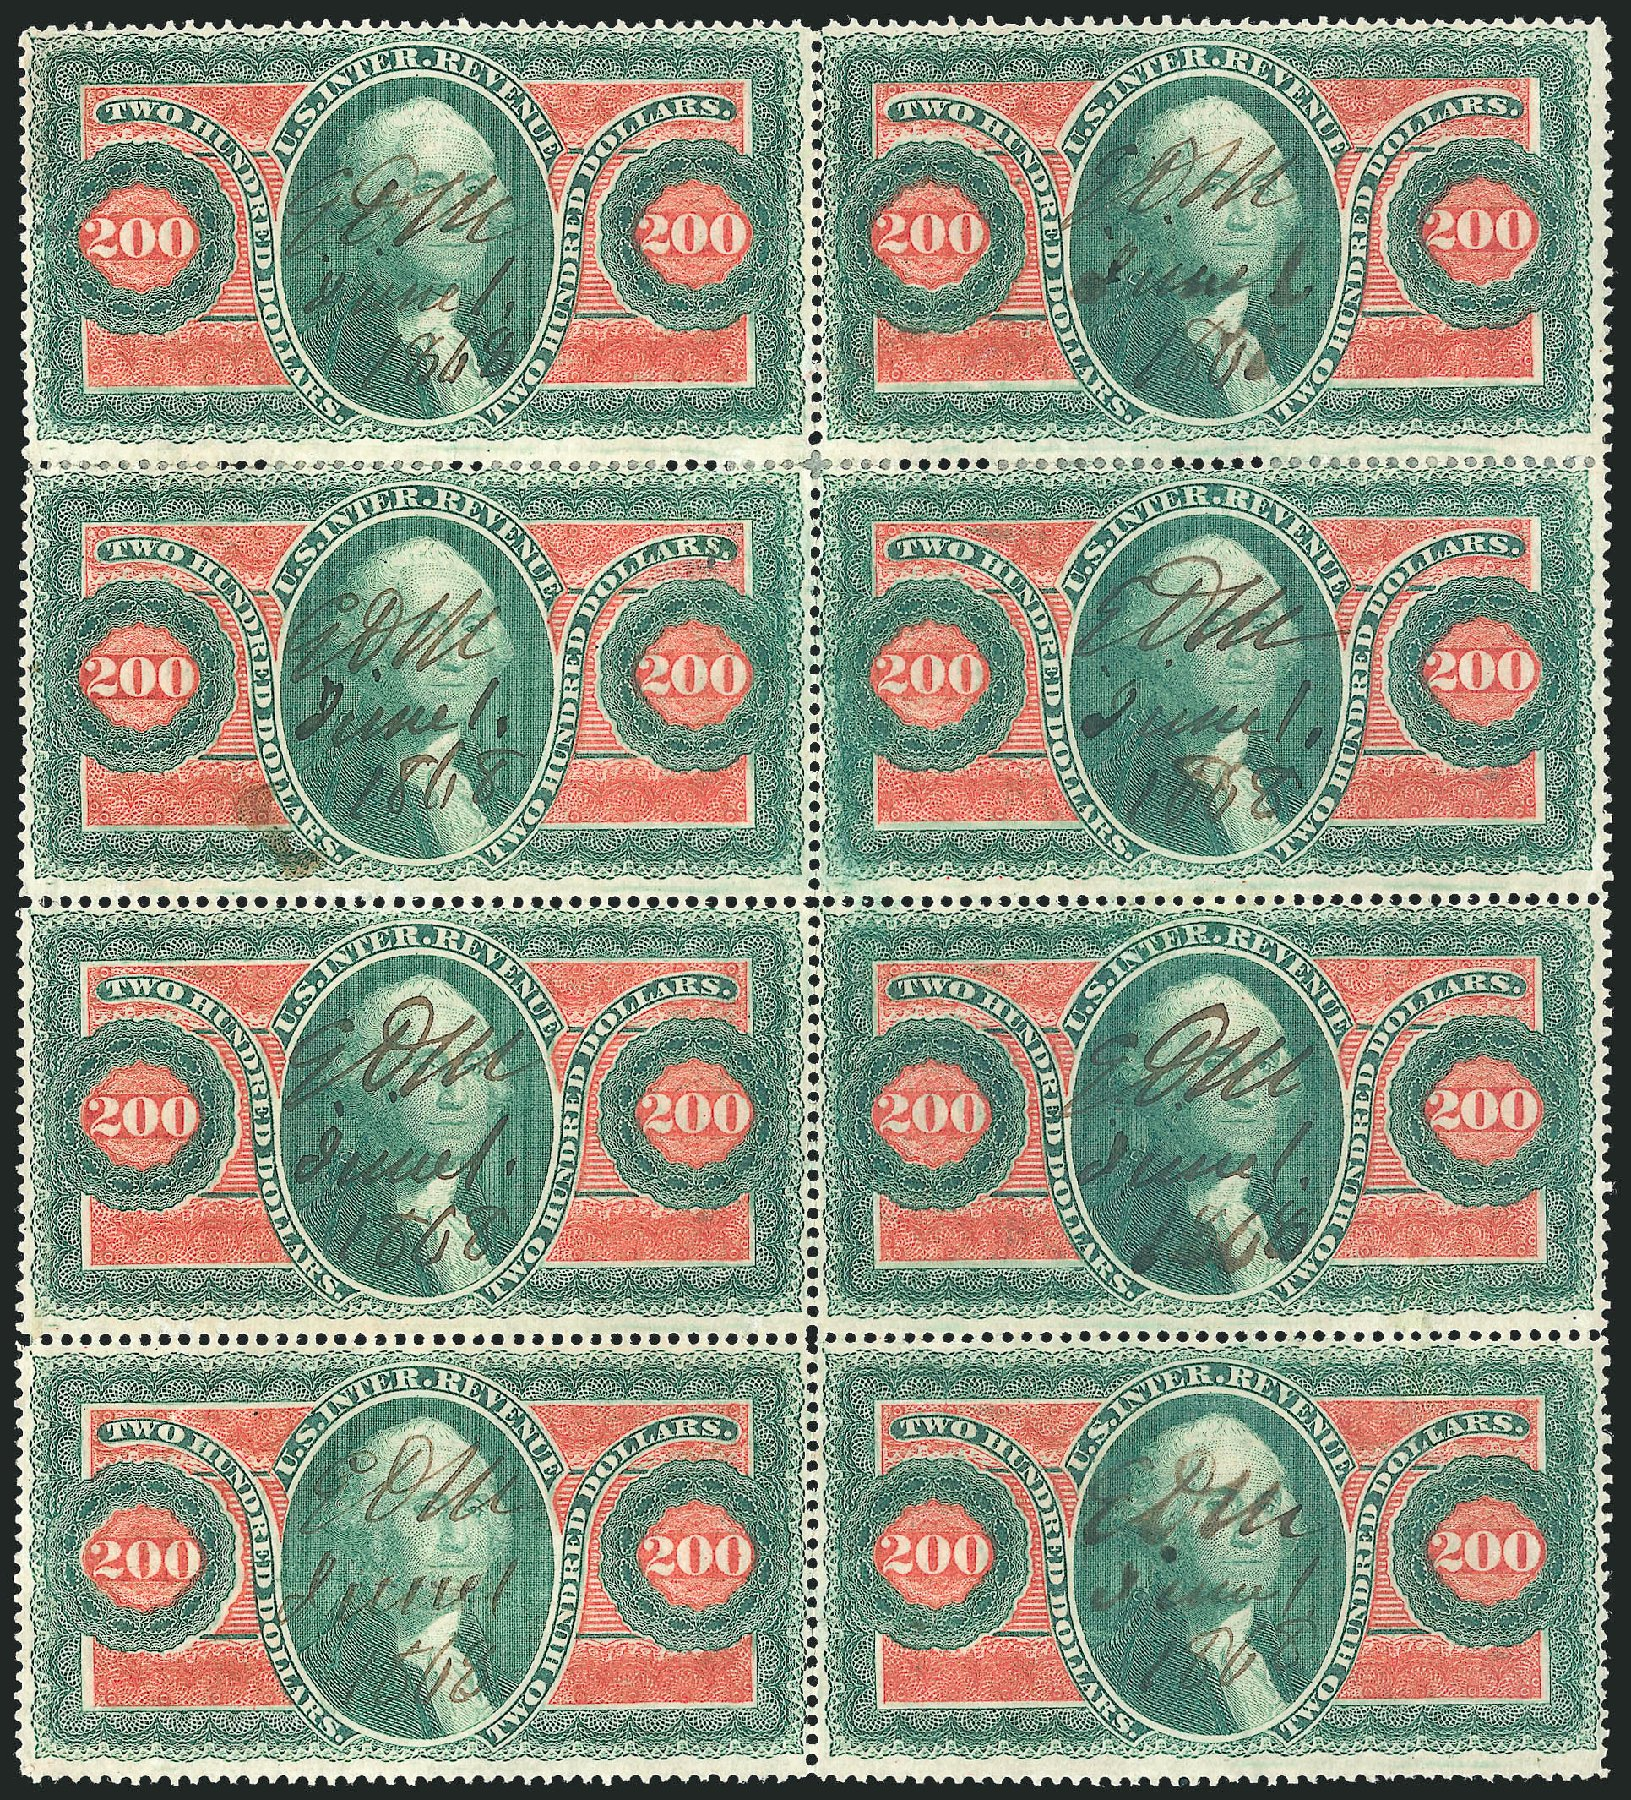 Values of US Stamps Scott R102 - US$200.00 1863 Revenue Internal. Robert Siegel Auction Galleries, Jun 2015, Sale 1100, Lot 174